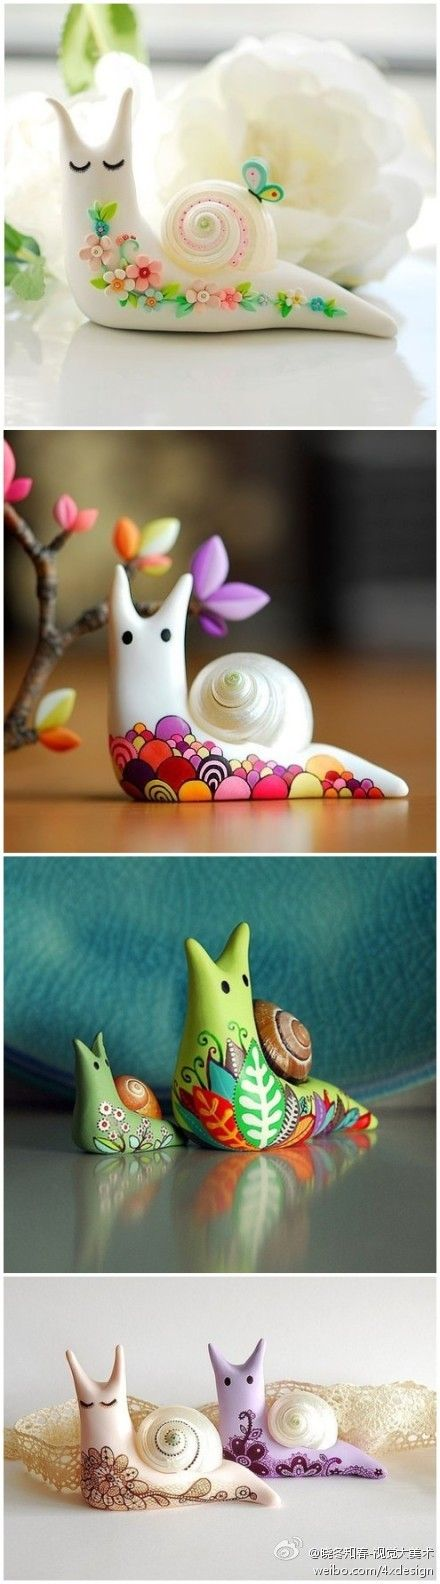 snails using air-dry clay/model